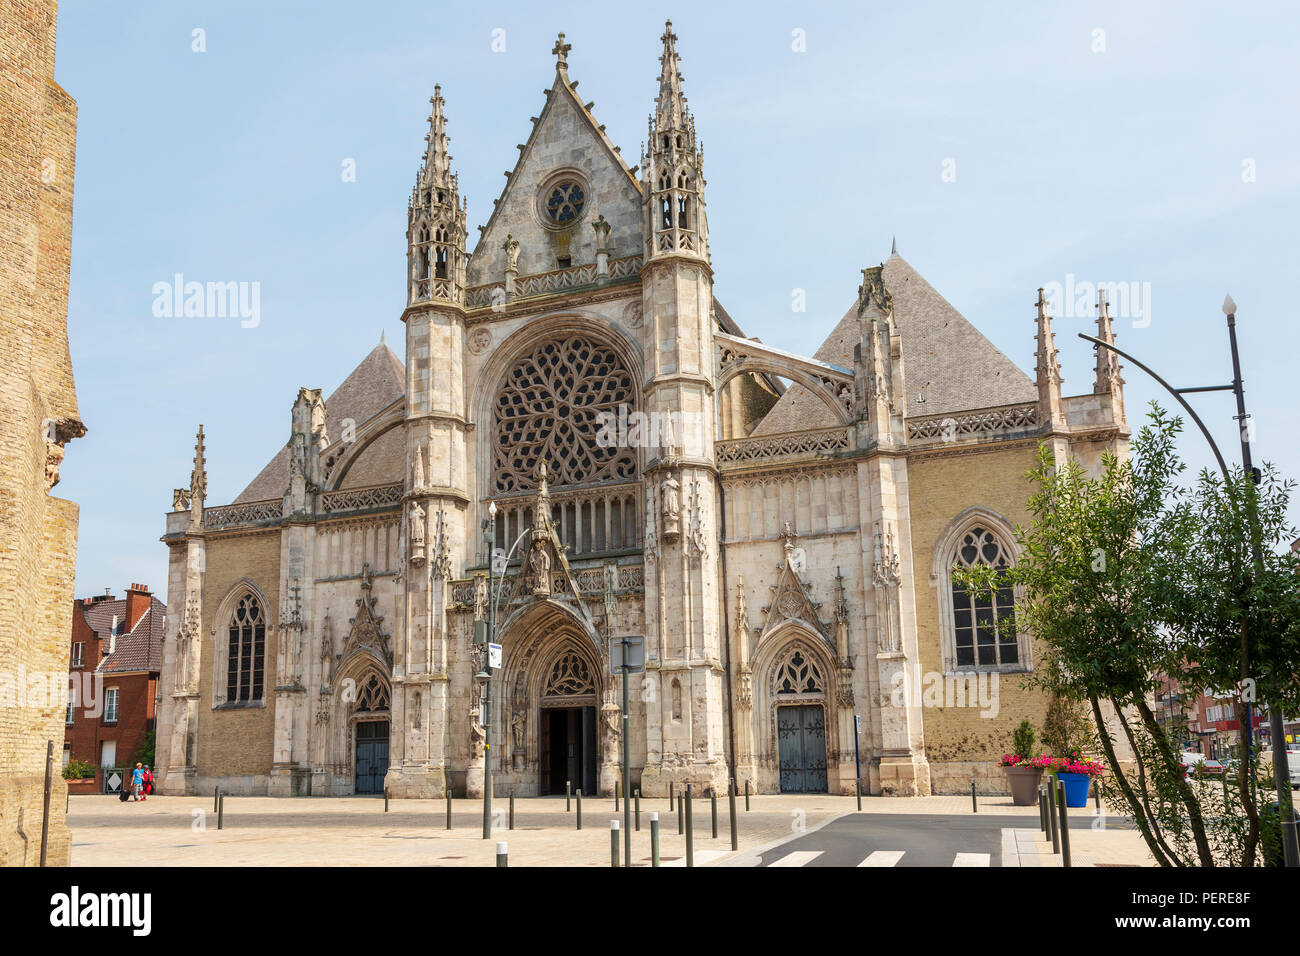 Saint Eloi Church, Dunkirk, Dunkerque, Hants-de-France, France, with bullet holes and damage from world war 2 - Stock Image